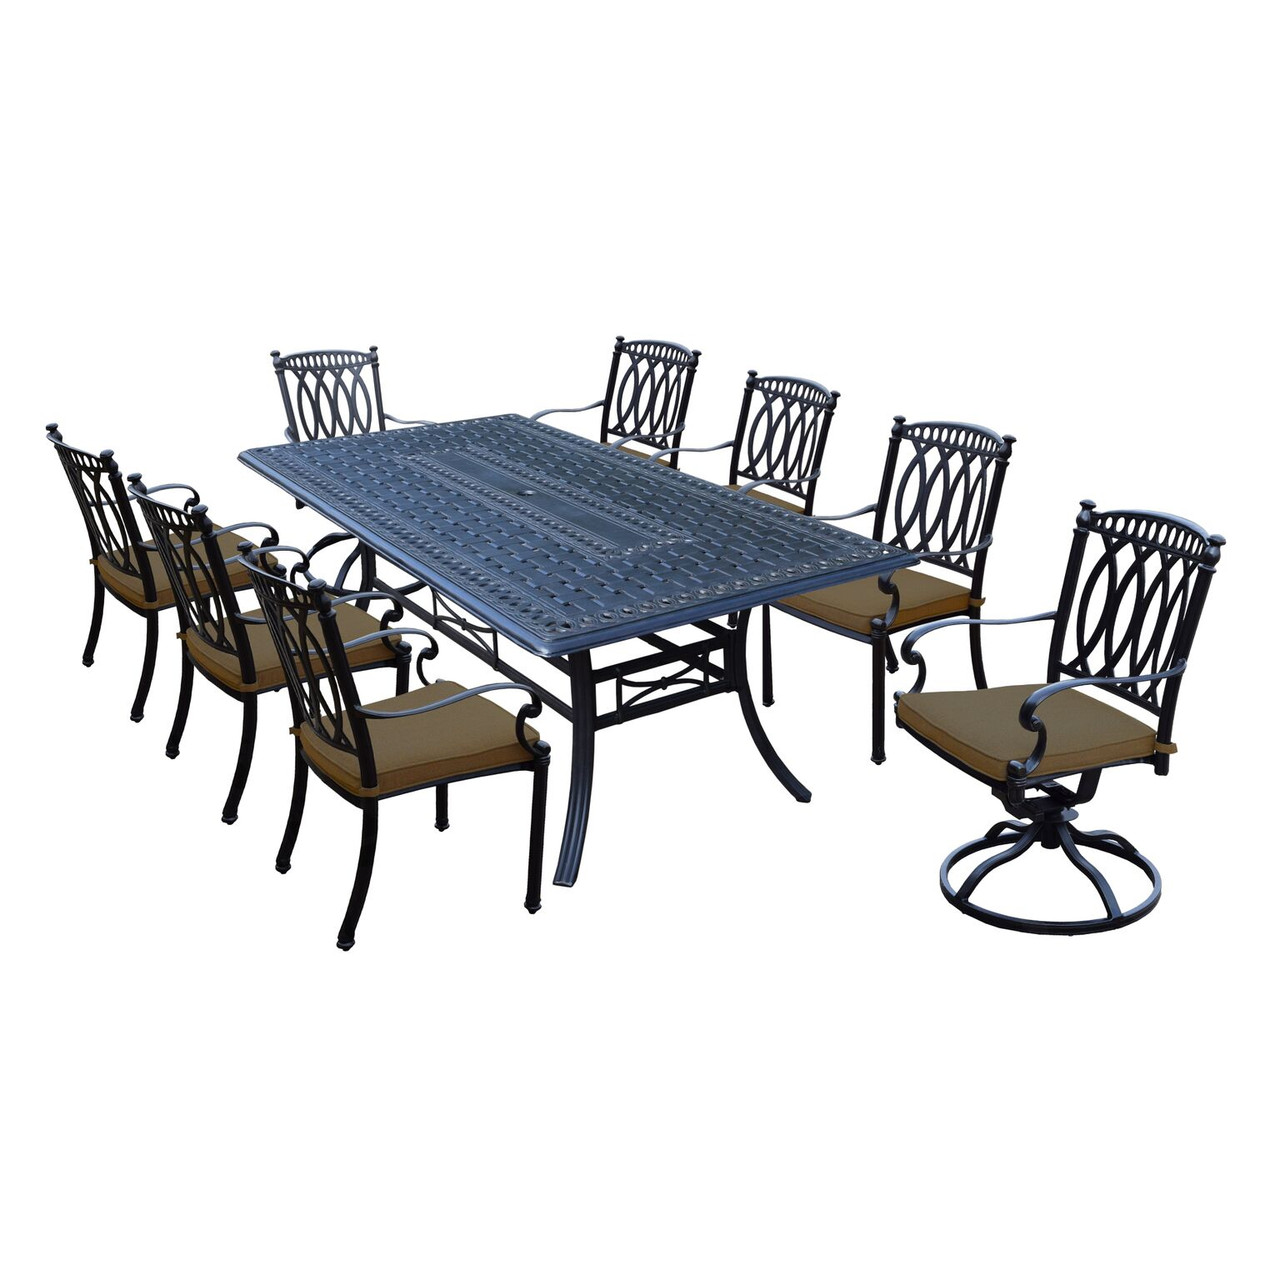 Beau 9 Piece Black Morocco Aluminum Outdoor Stackable And Swivel Patio Dining Set  W/ Tan Sunbrella Cushions   32732891